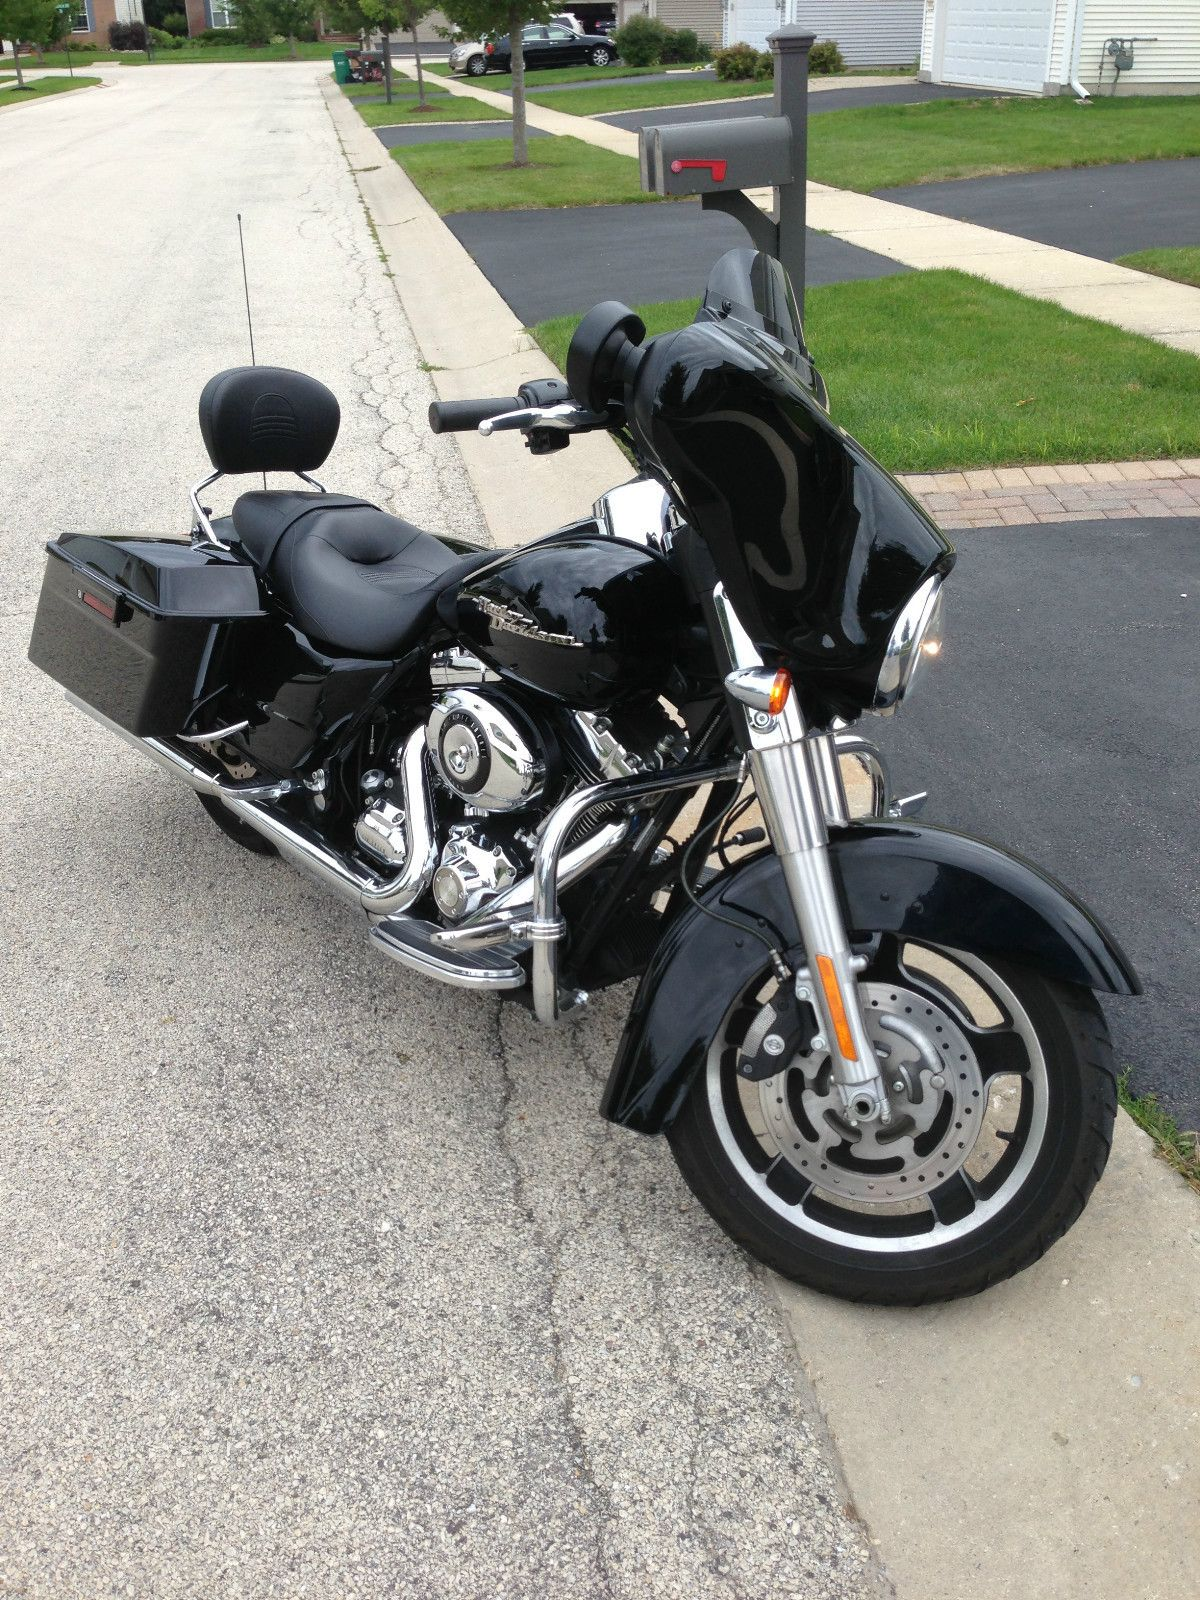 2009 harley davidson touring all models service manual instant download why wait if [ 1200 x 1600 Pixel ]